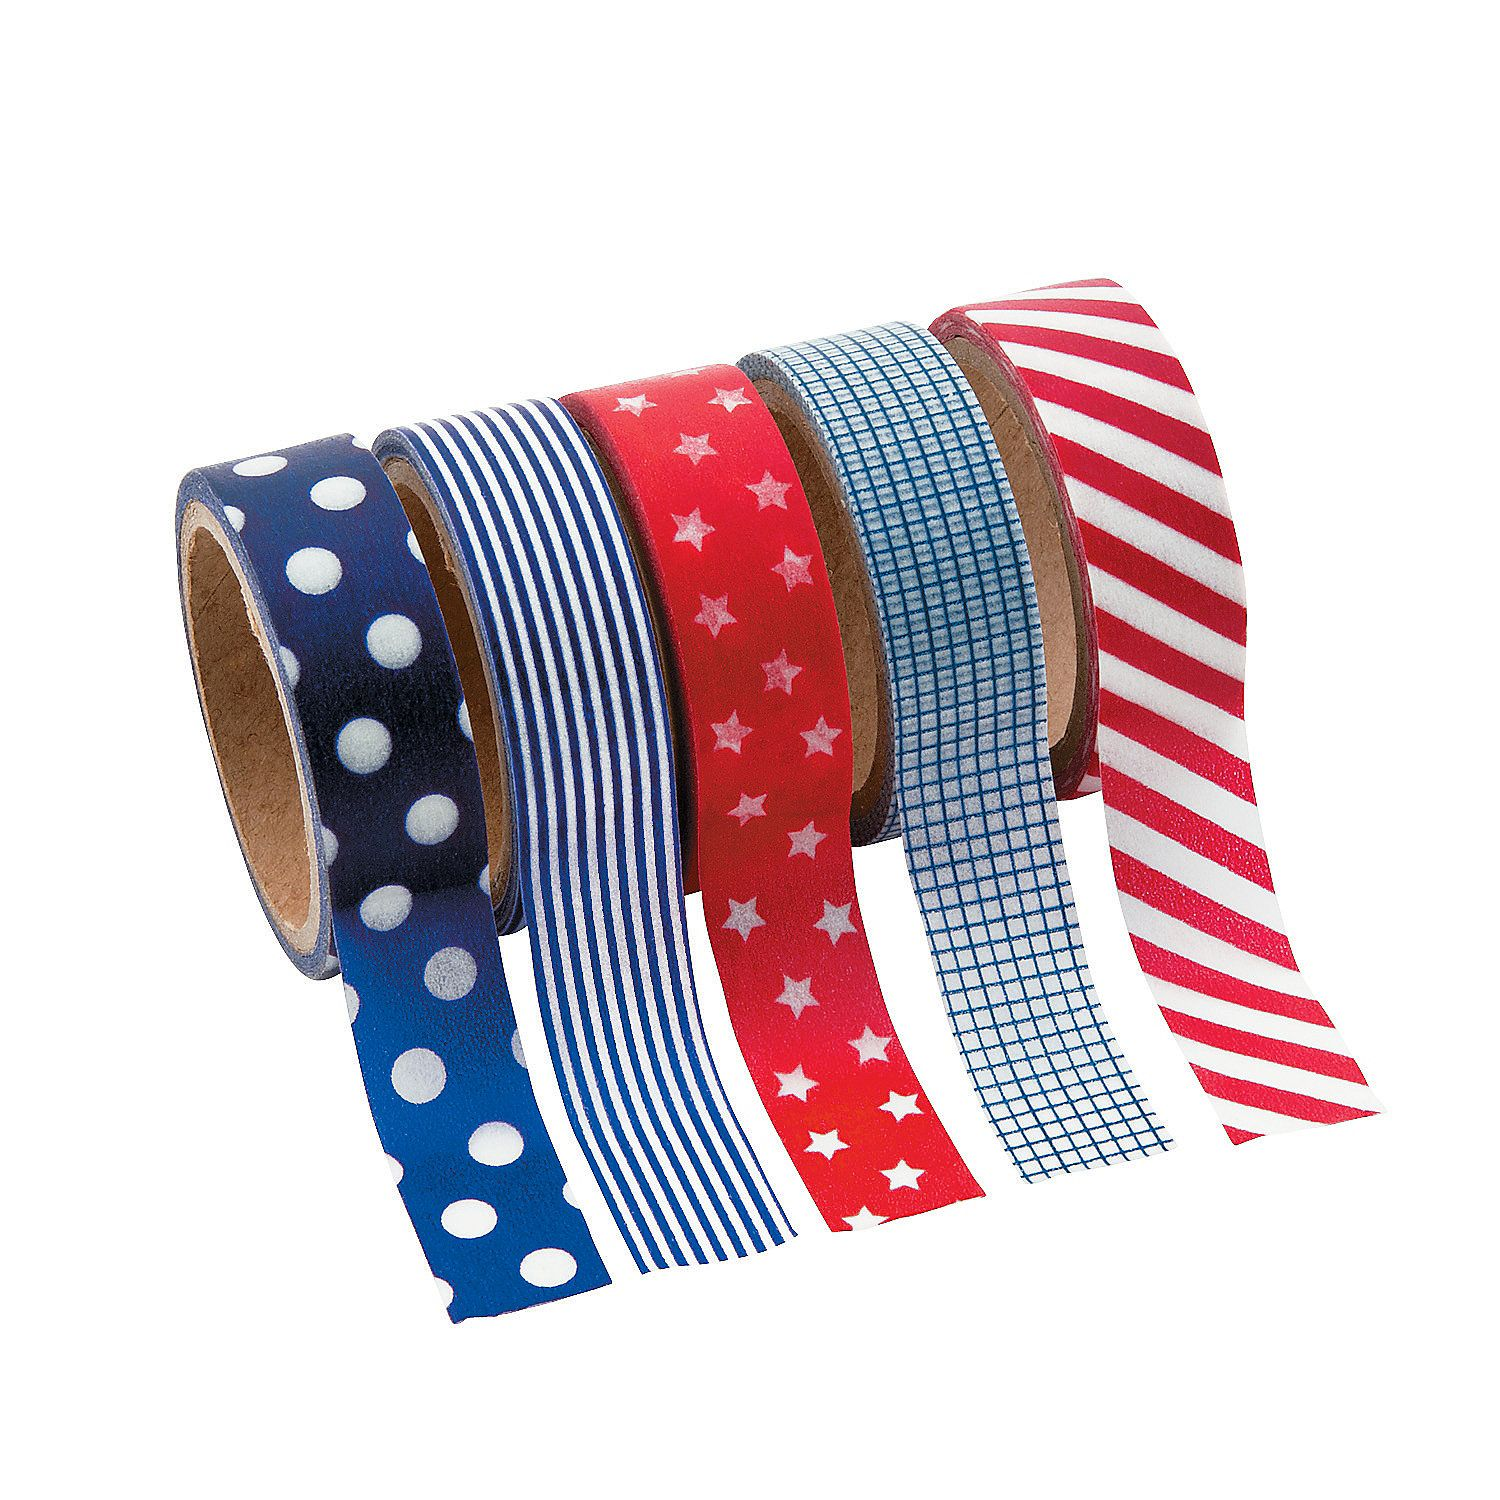 """Patriotic Washi Tape Set - OrientalTrading.com - Give your paper crafts some star-spangled style with this decorative masking tape. This patriotic-patterned tape adds Americana charm to crafts of all kinds. Each roll includes 16 ft. of tape. (5 rolls per unit) 5/8"""" © OTC"""